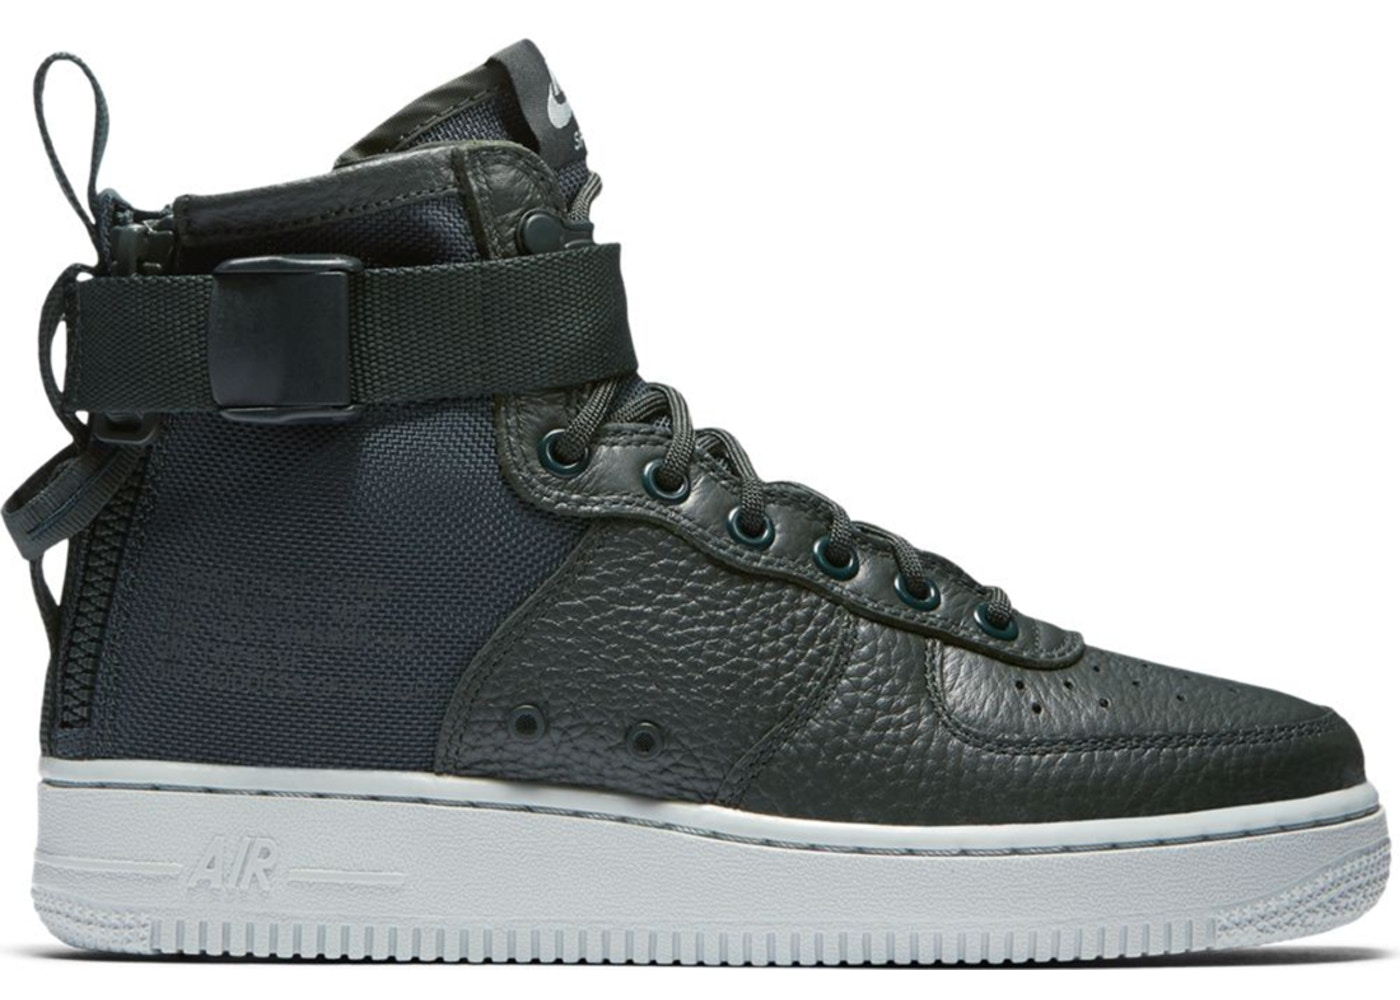 【NeaYearSALE1/1-1/5】ナイキ NIKE エアー ミッド 緑 グリーン スニーカー 【 AIR GREEN SF FORCE 1 MID OUTDOOR W GREENLIGHT PUMICE 】 送料無料